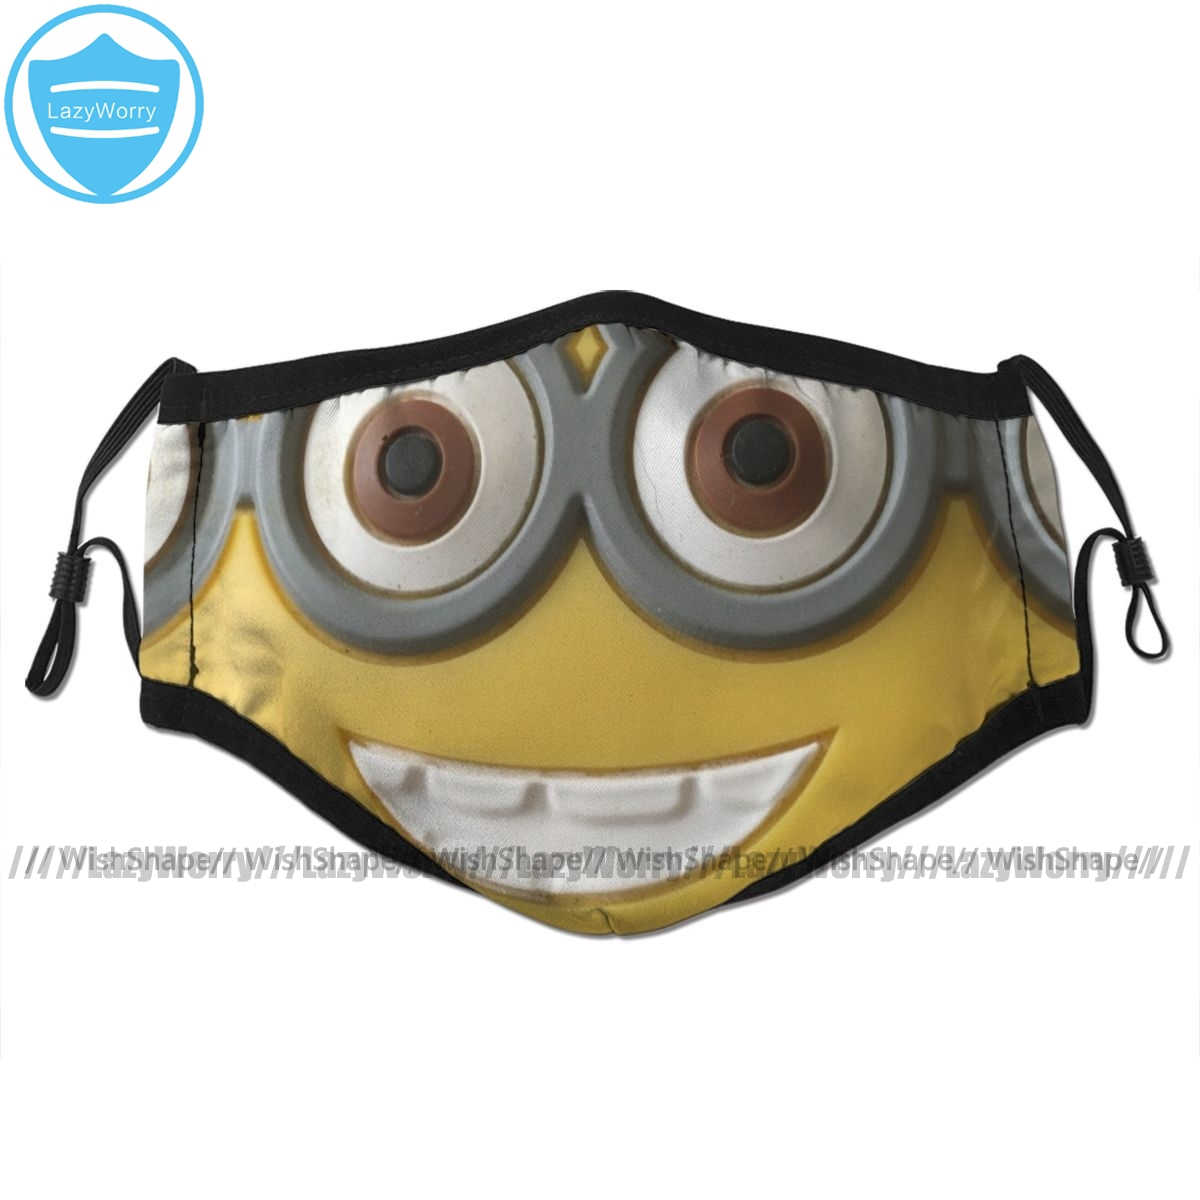 Minion Mouth Face Mask Minion Facial Mask Cool Kawai With 2 Filters For Adult